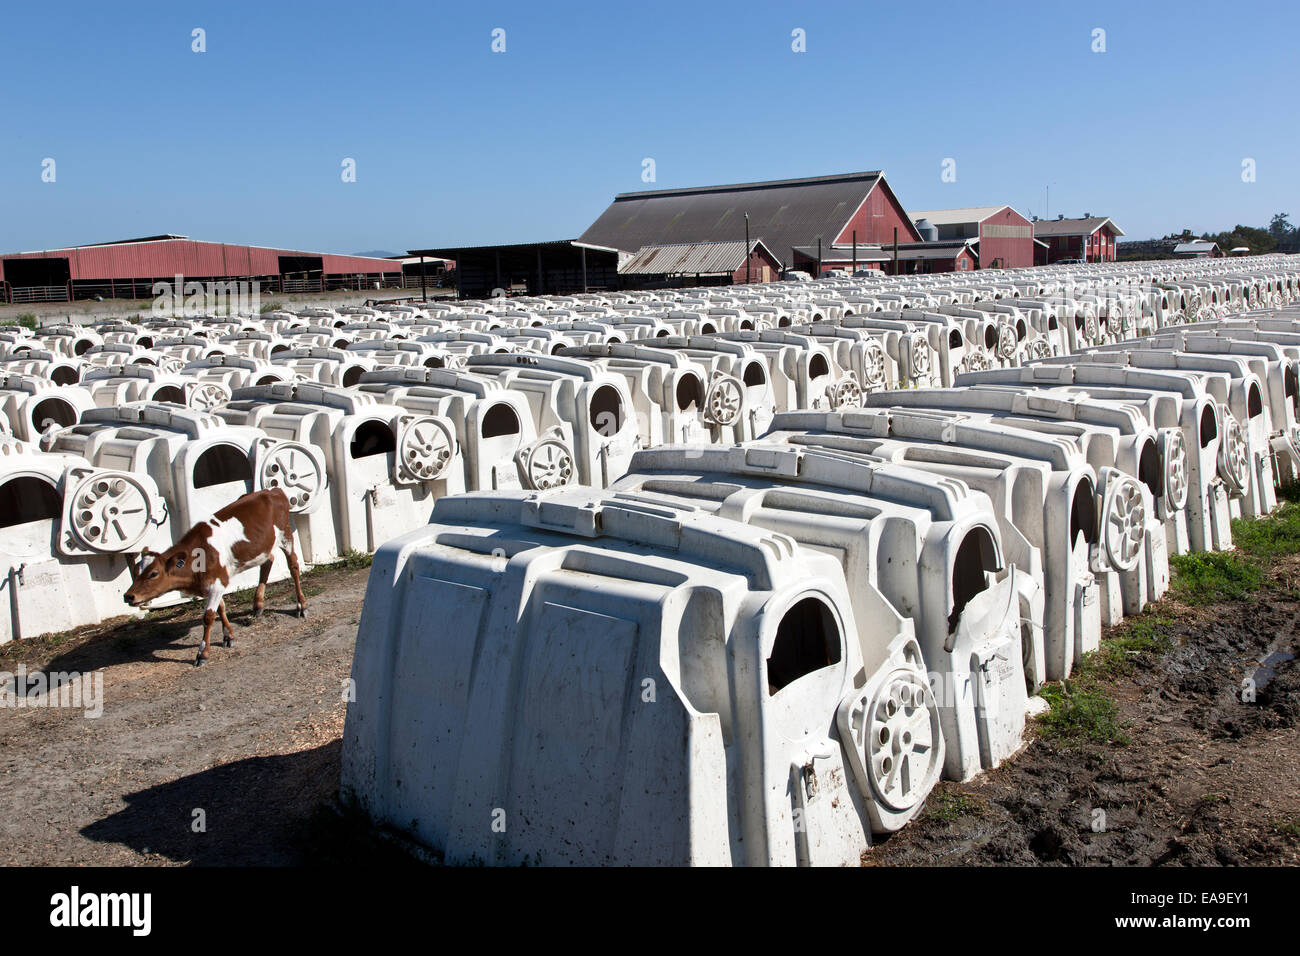 Rows of calf hutches, eco dairy. - Stock Image